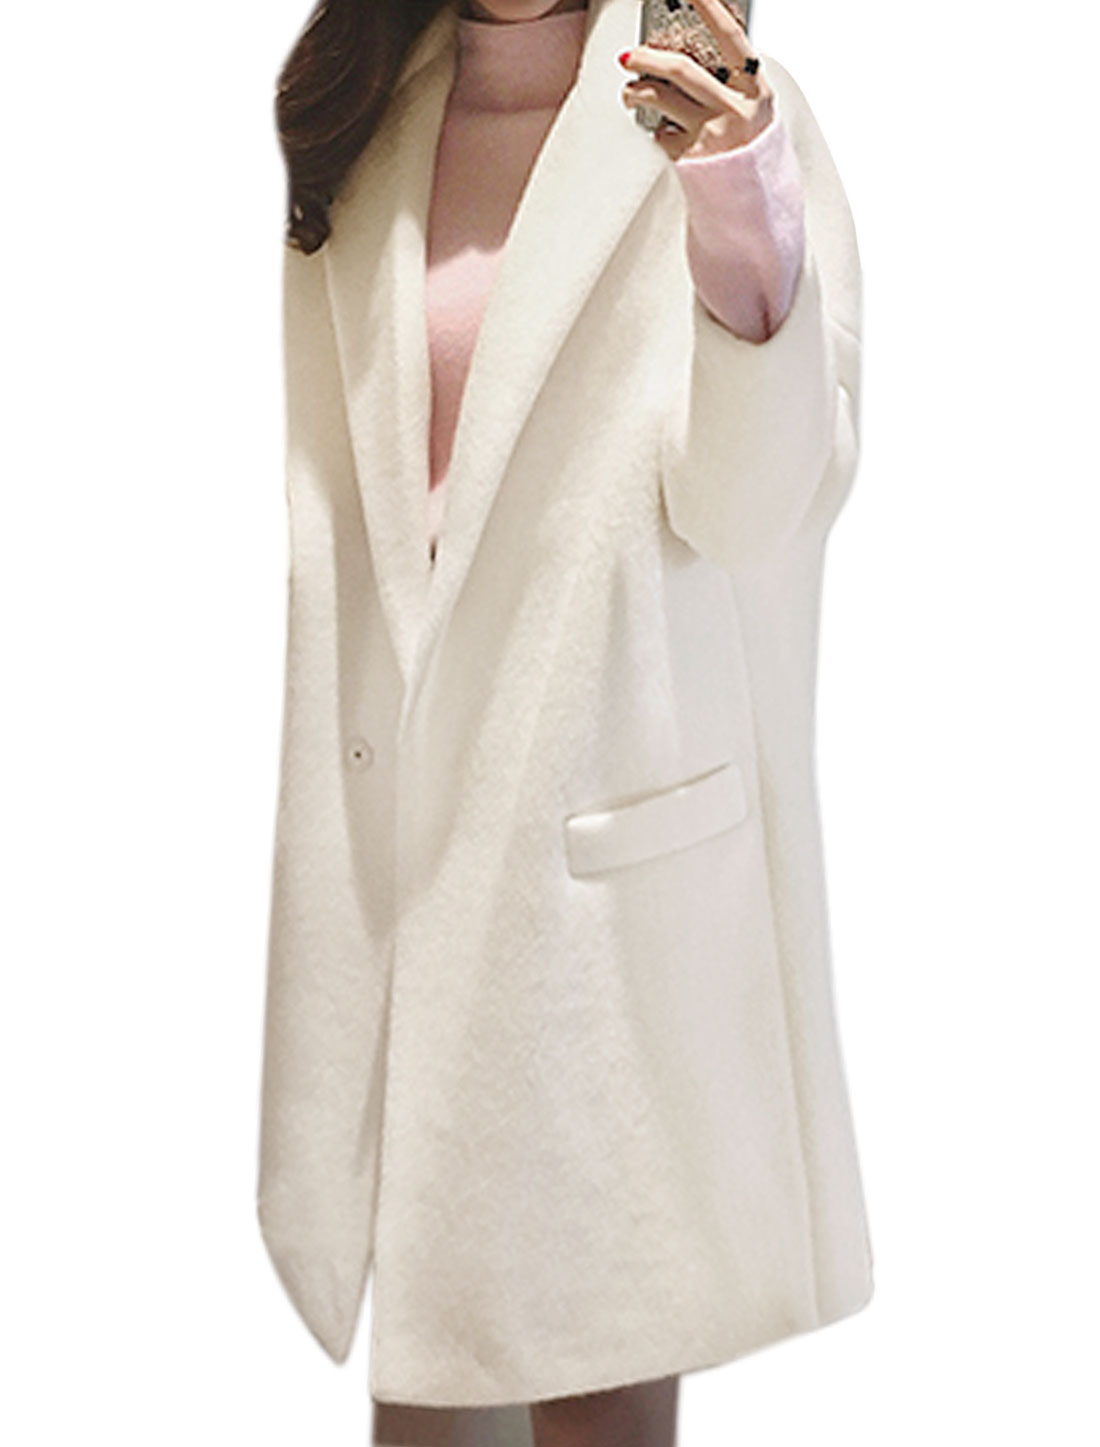 Women One Button Tunic Worsted Coat w Pockets White XS